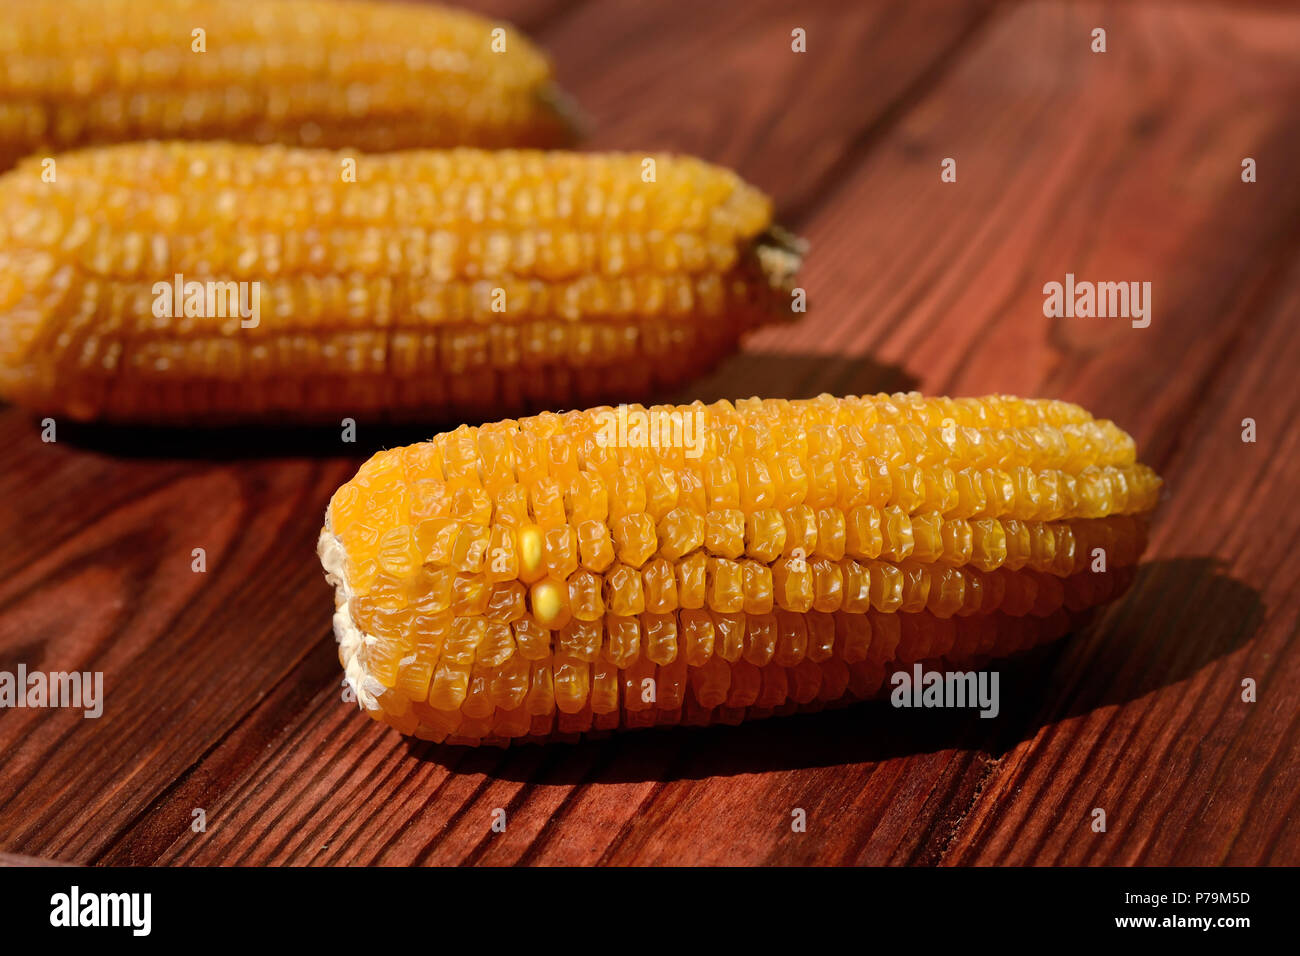 Corn of the last harvest lie on a wooden background - Stock Image